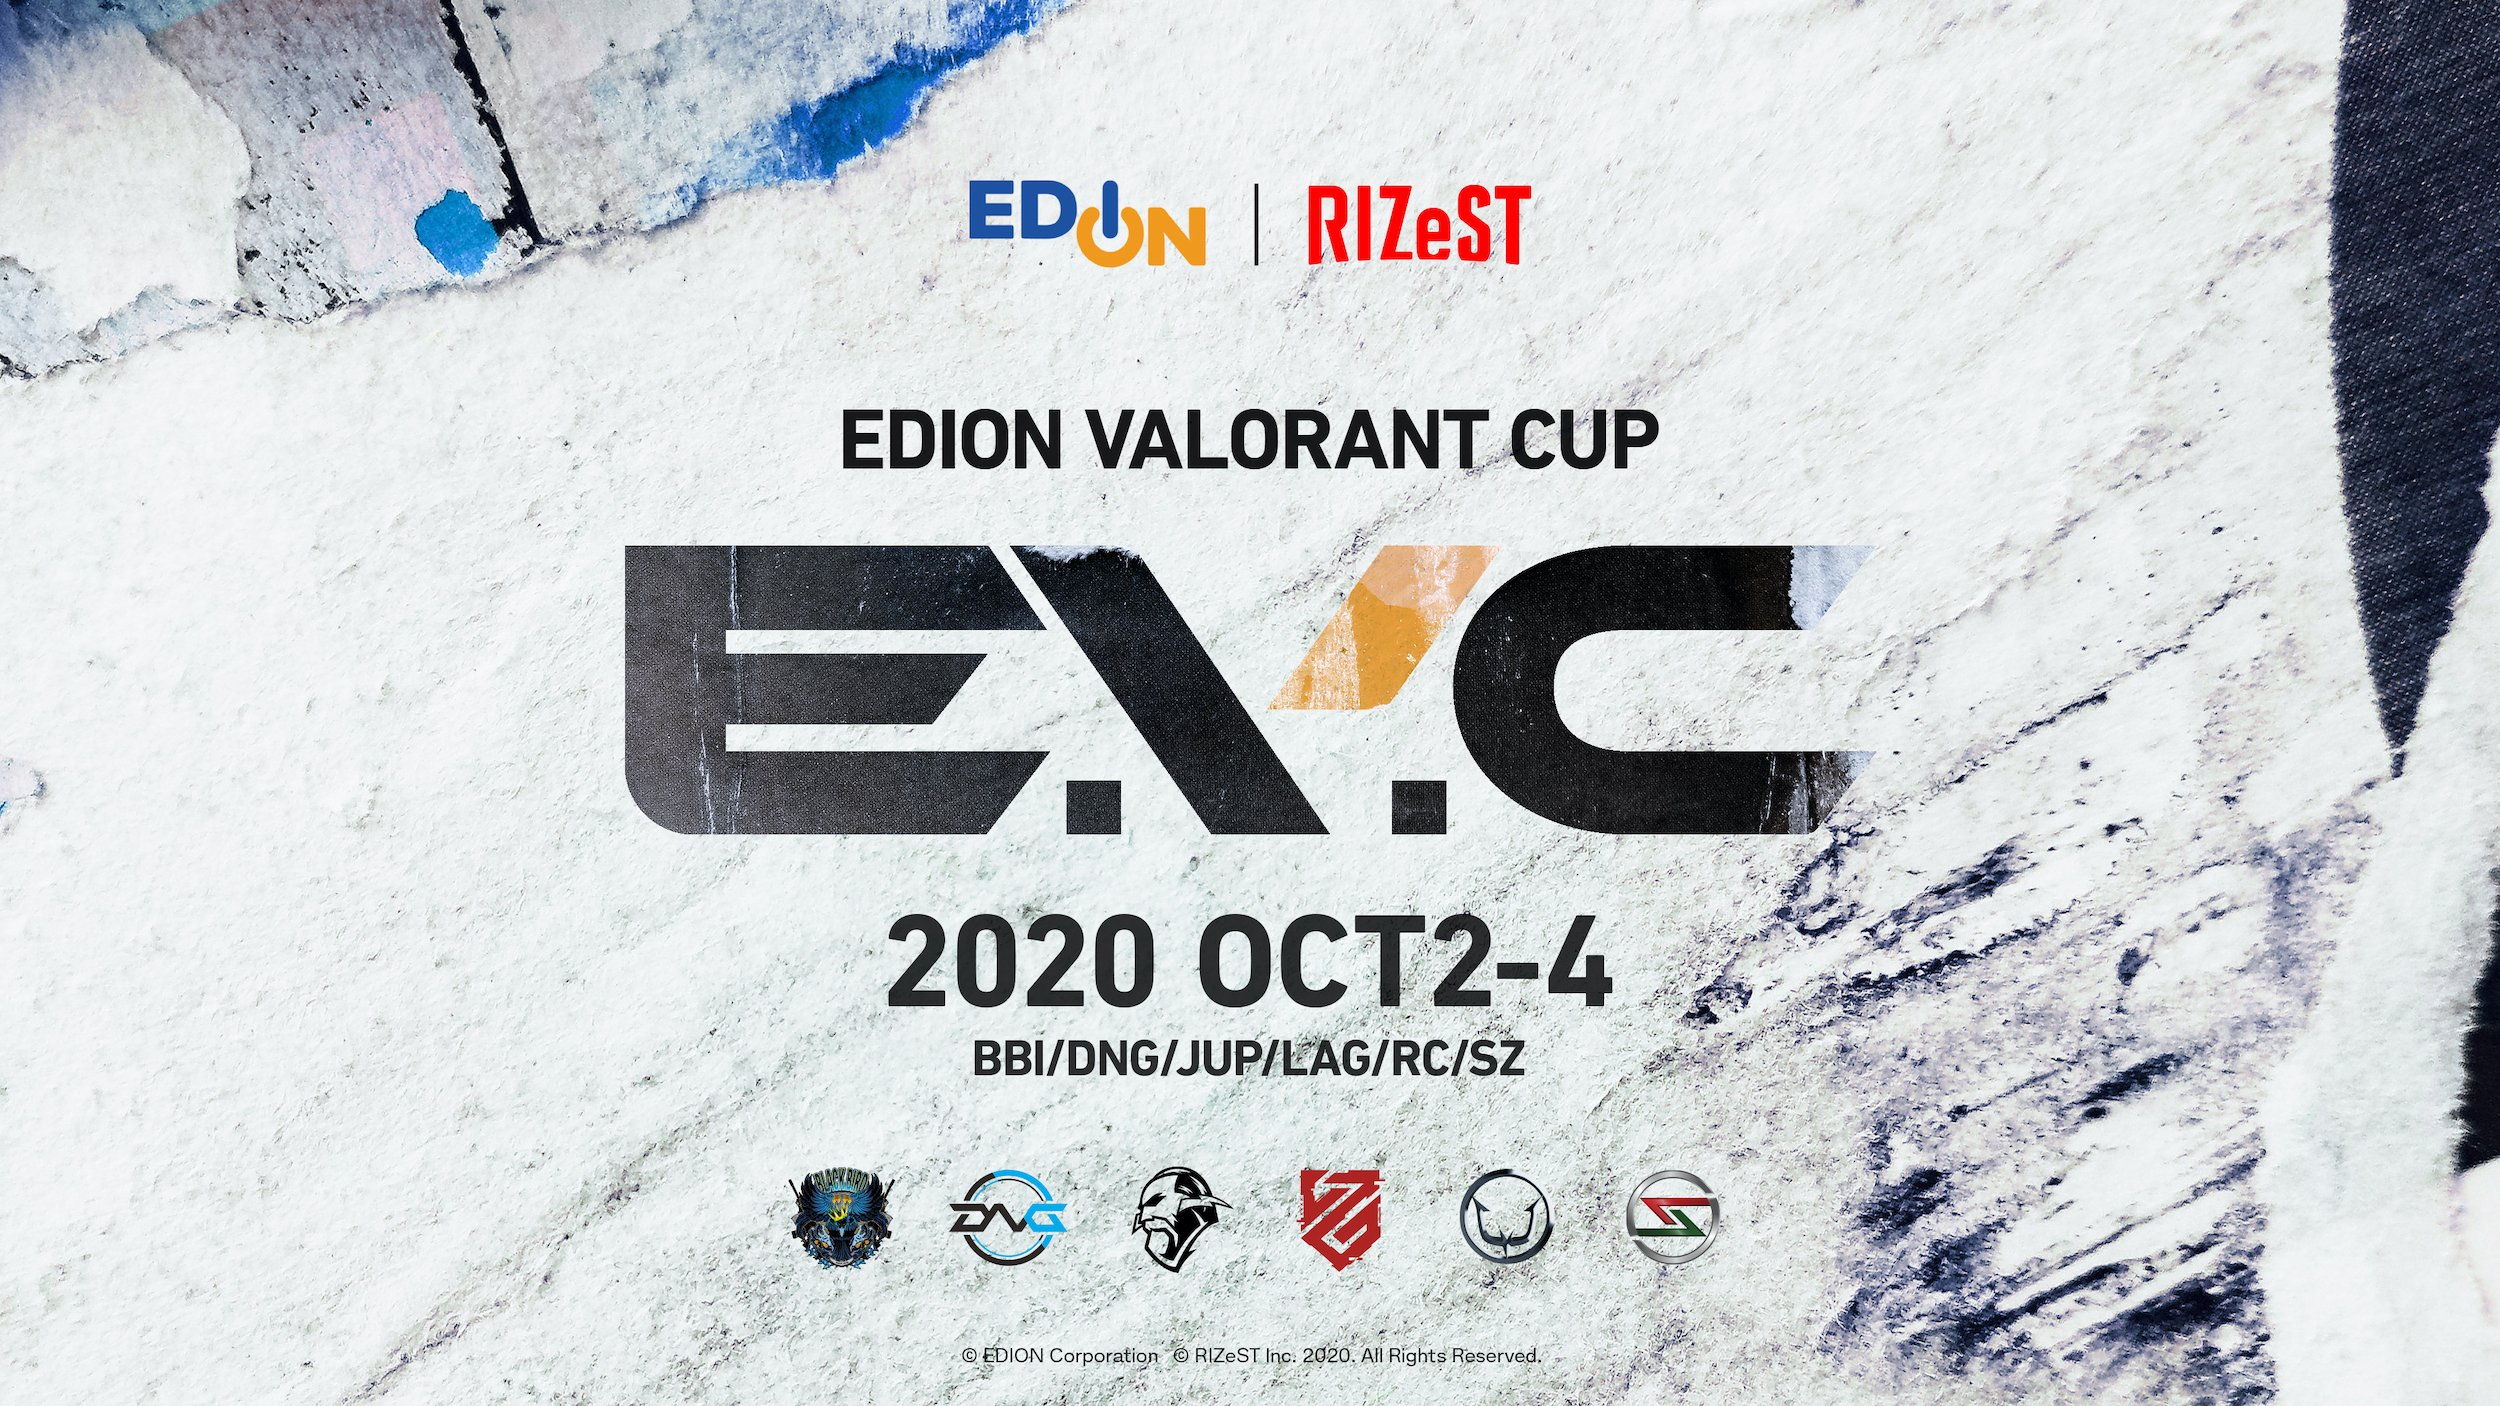 【VALORANT】ピック率から見るEDION VALORANT CUPとGALLERIA GLOBAL CHALLENGE 2020比較【ヴァロラント】